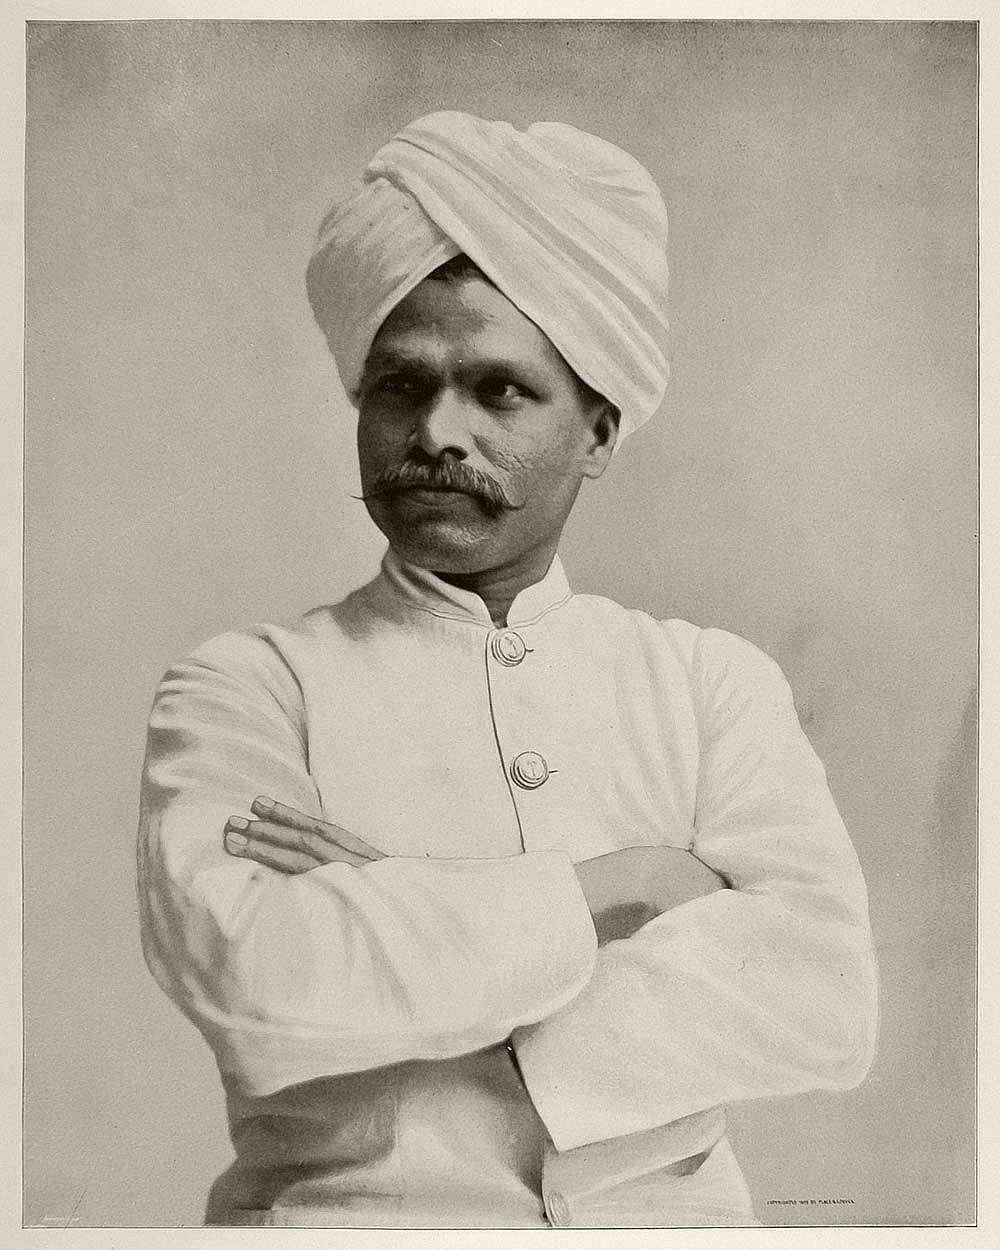 Mr. D. Joseph, an East Indian from Ceylon (now known as Sri Lanka).